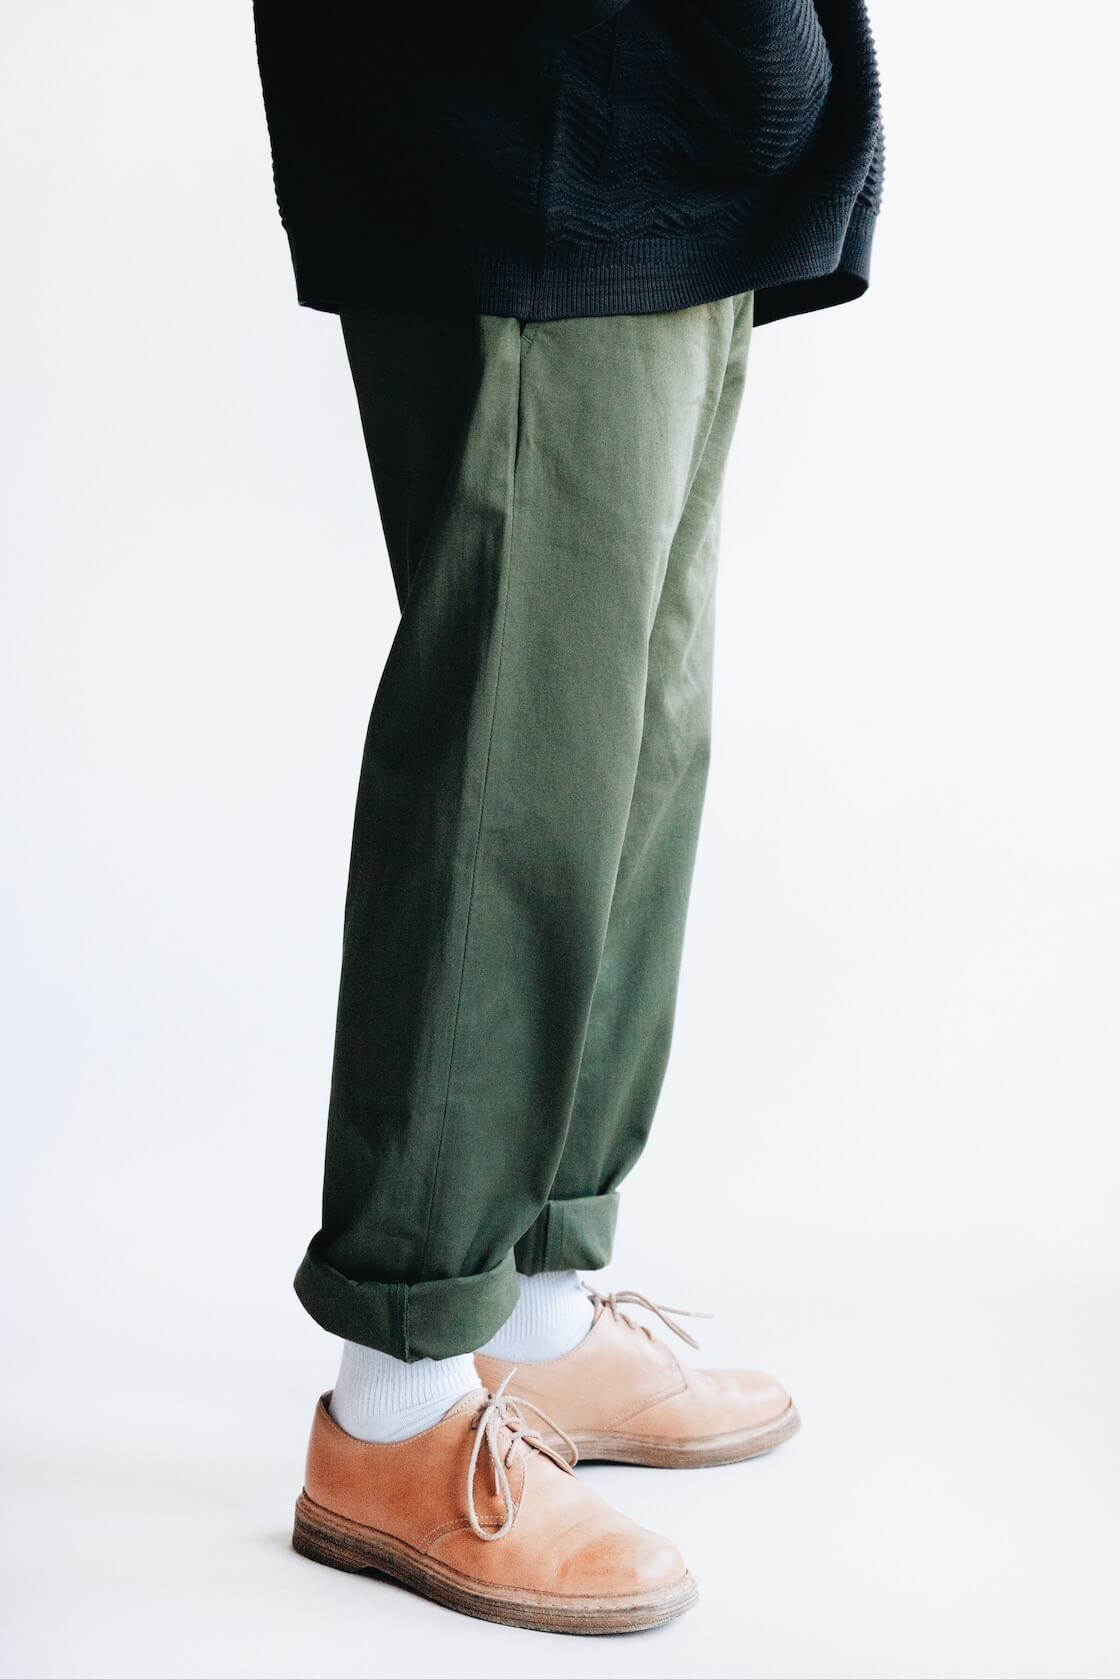 Shunto Hanten Knit from Yashiki, Military Chinos from Universal Works and MIP-21's from Hender Scheme on body